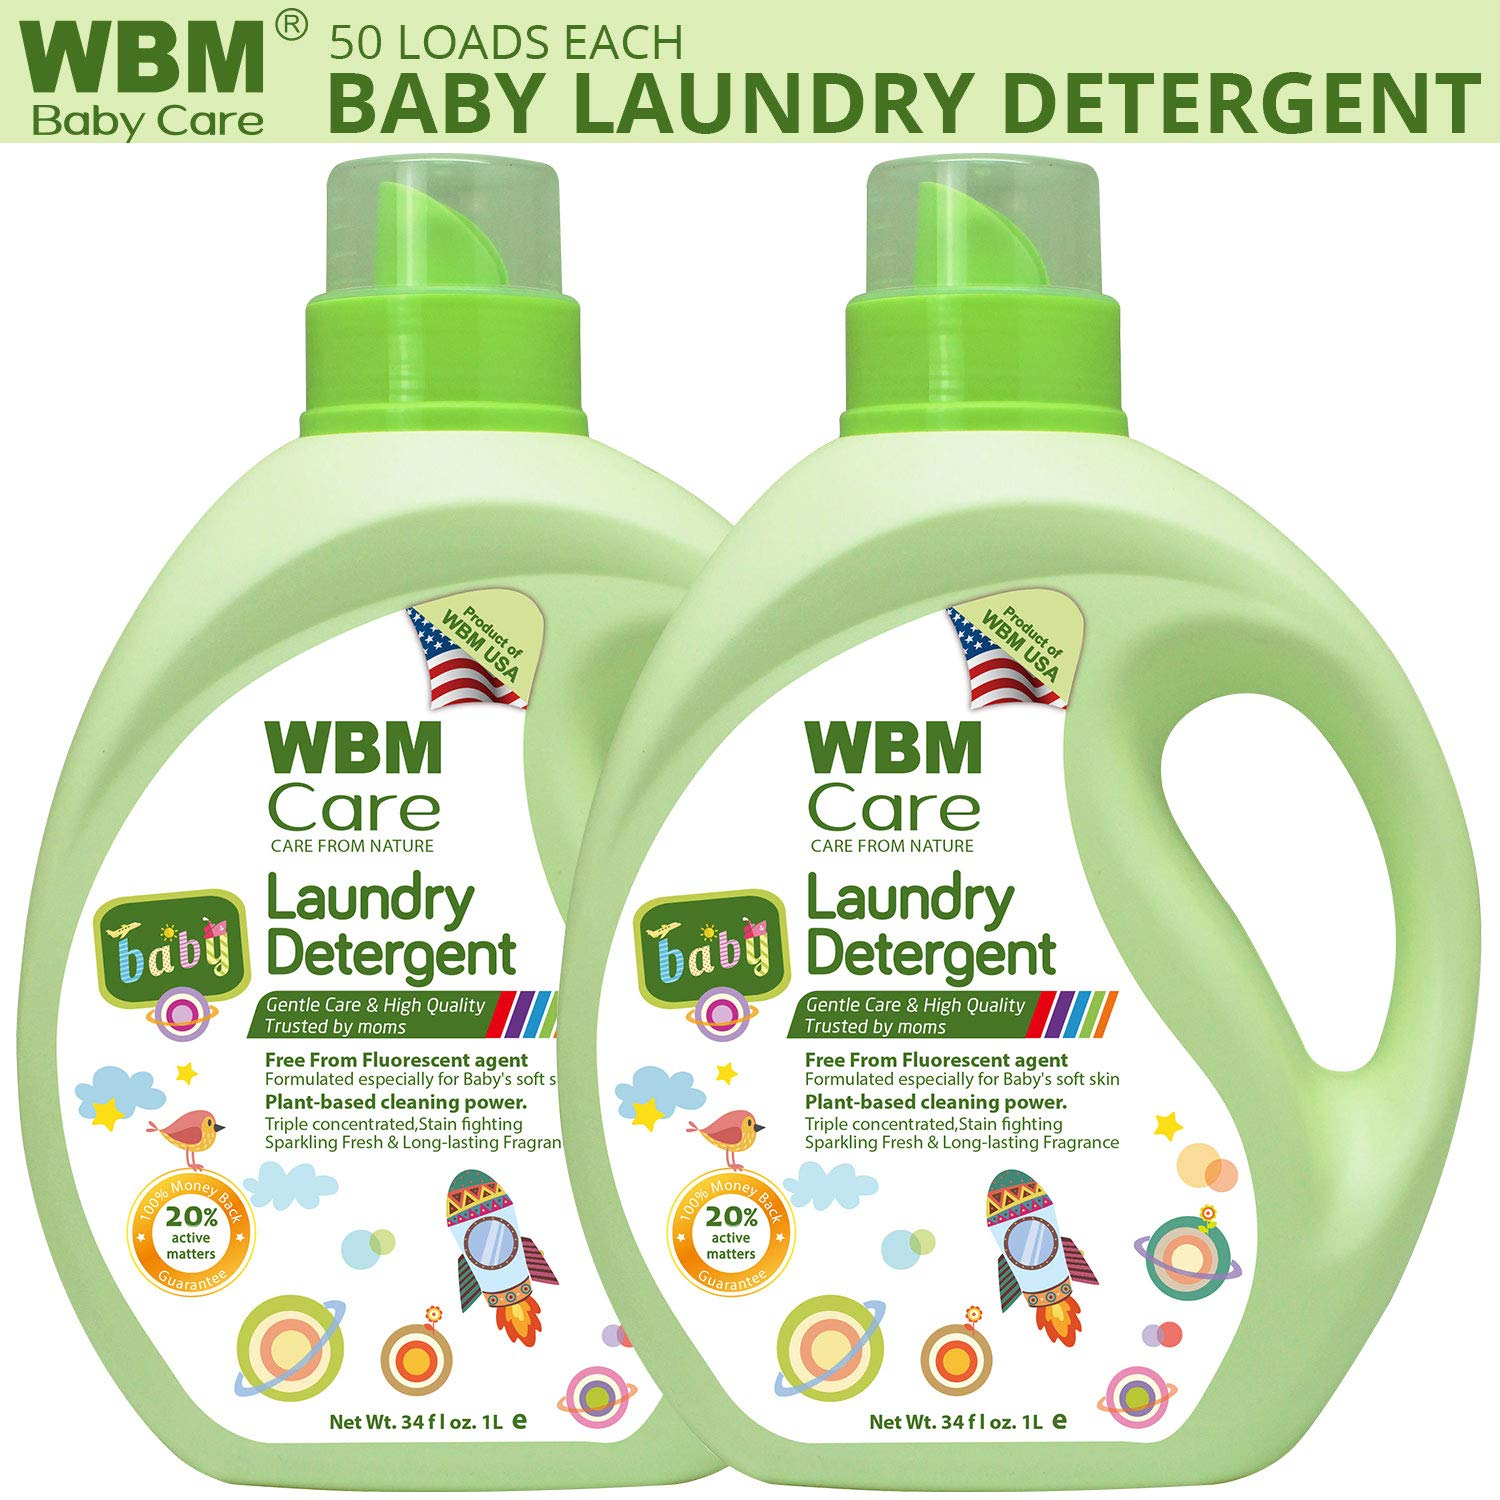 WBM Care High Quality Liquid Laundry Detergent   Free From Flourscent - Long Lasting Fragrance  34 oz , 50 Loads Each (2 Pack) by WBM LLC